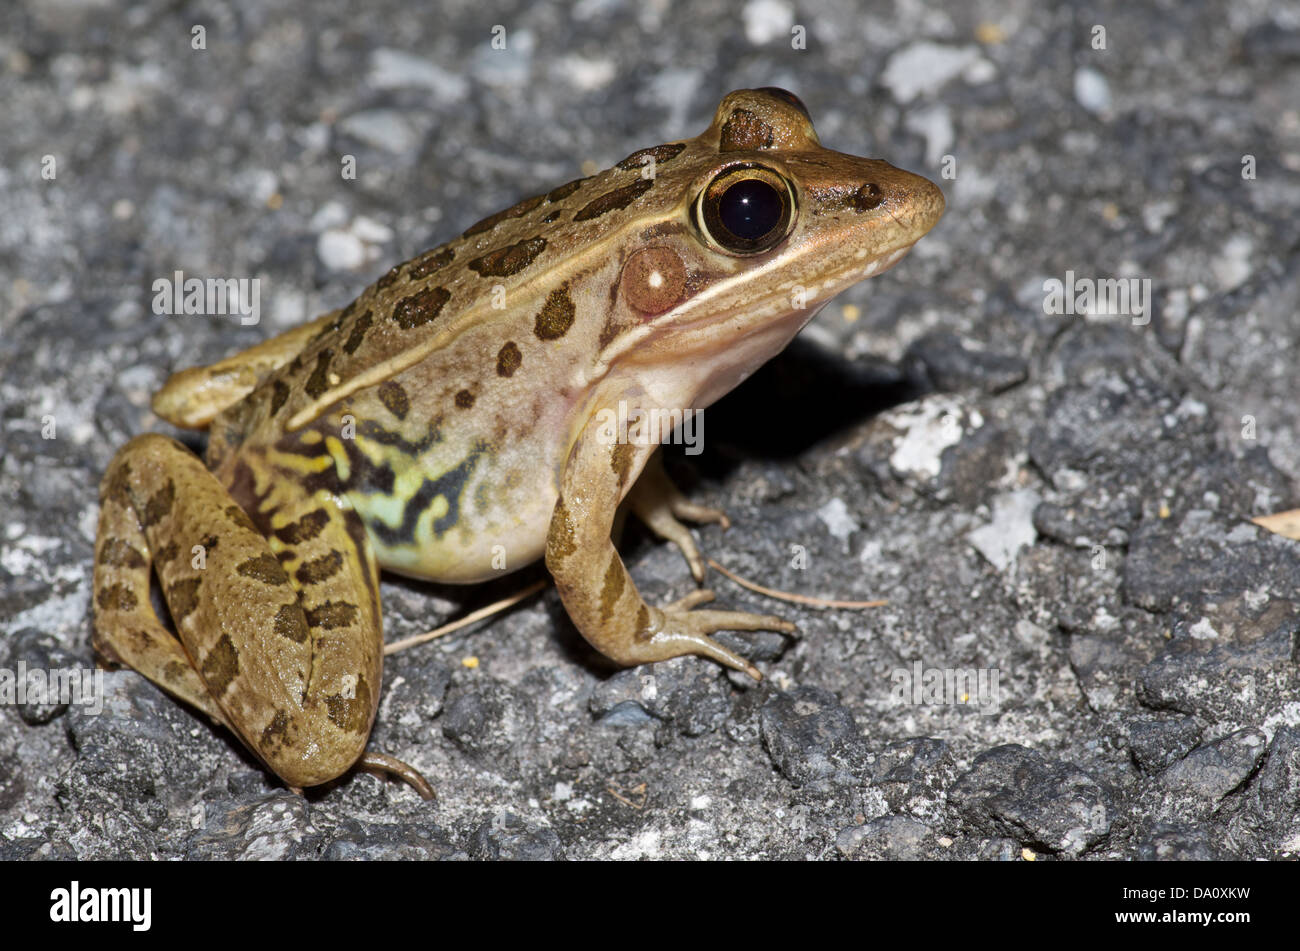 Frogs to Leap Into Mass Extinction | Financial Tribune